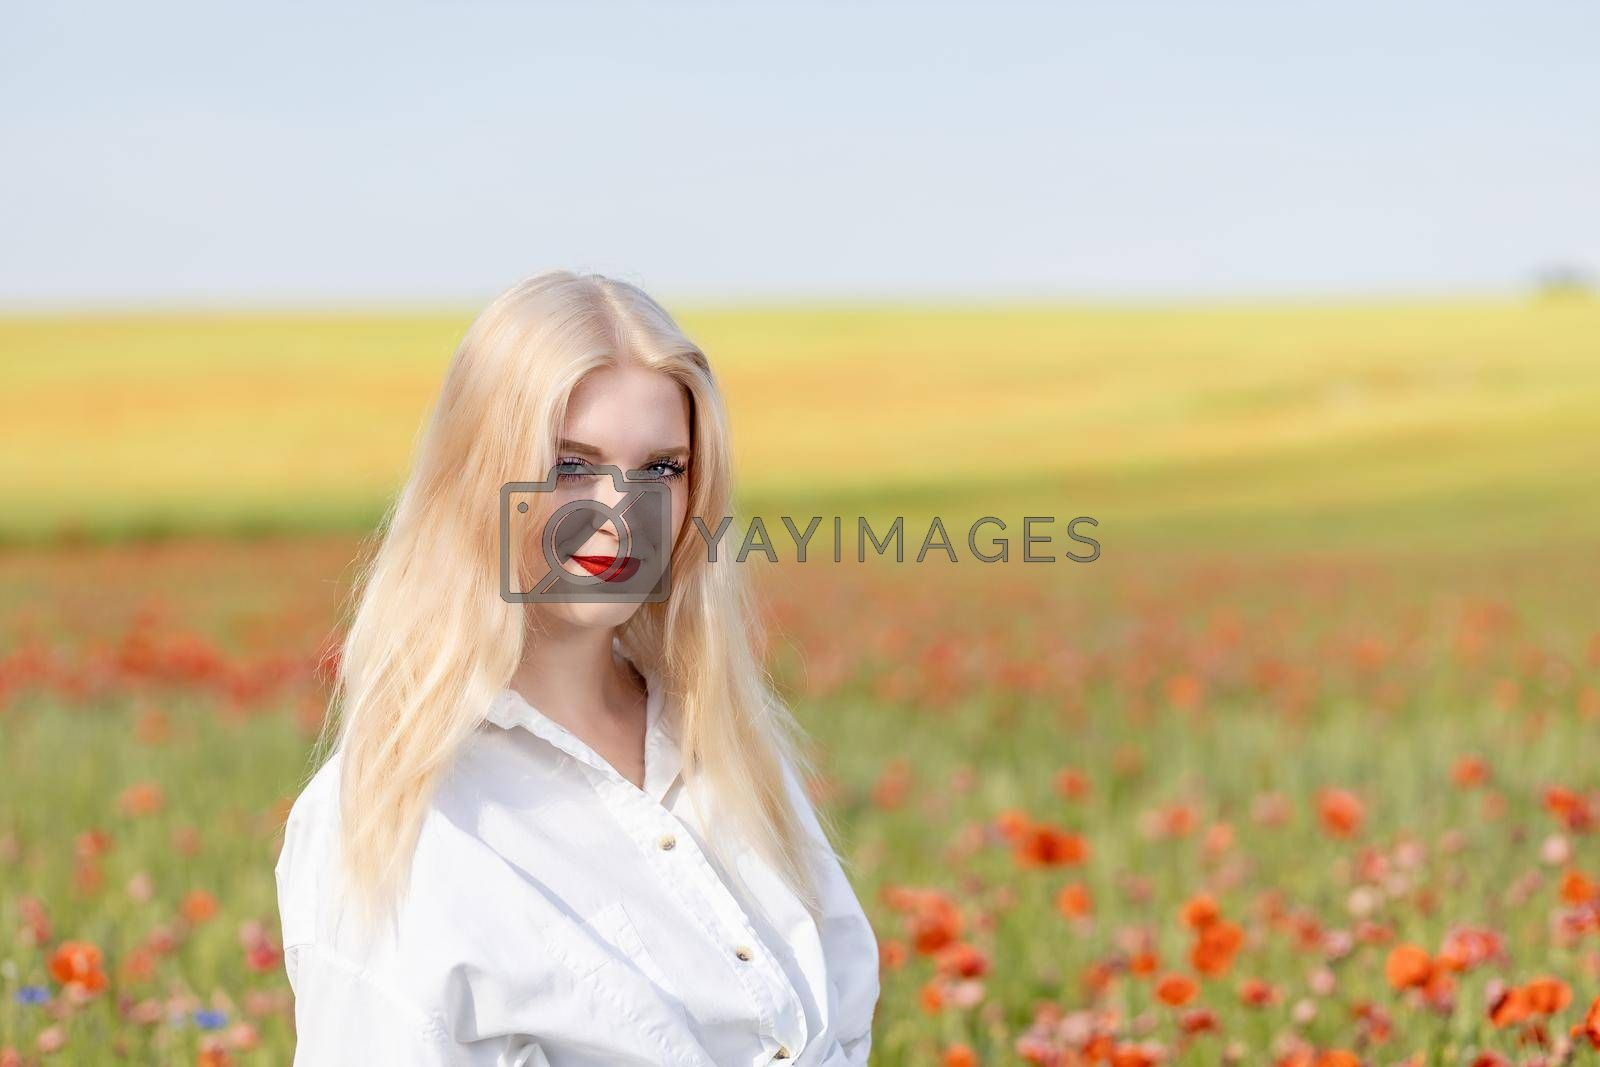 Royalty free image of Smiling blonde girl is  posing in red poppy field.  by Frank11